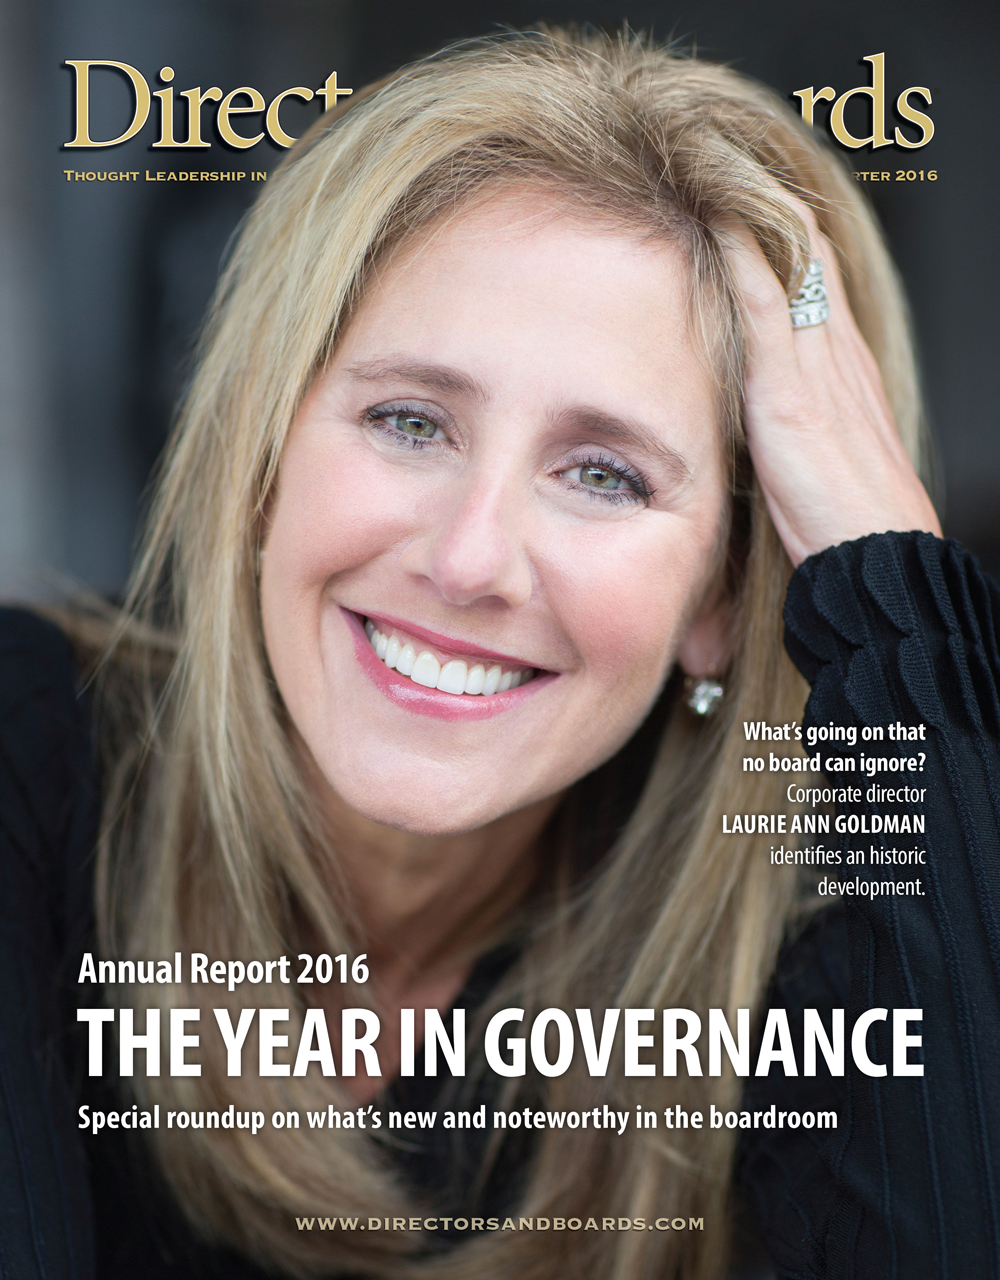 Directors & Boards 2016 Annual Report Cover